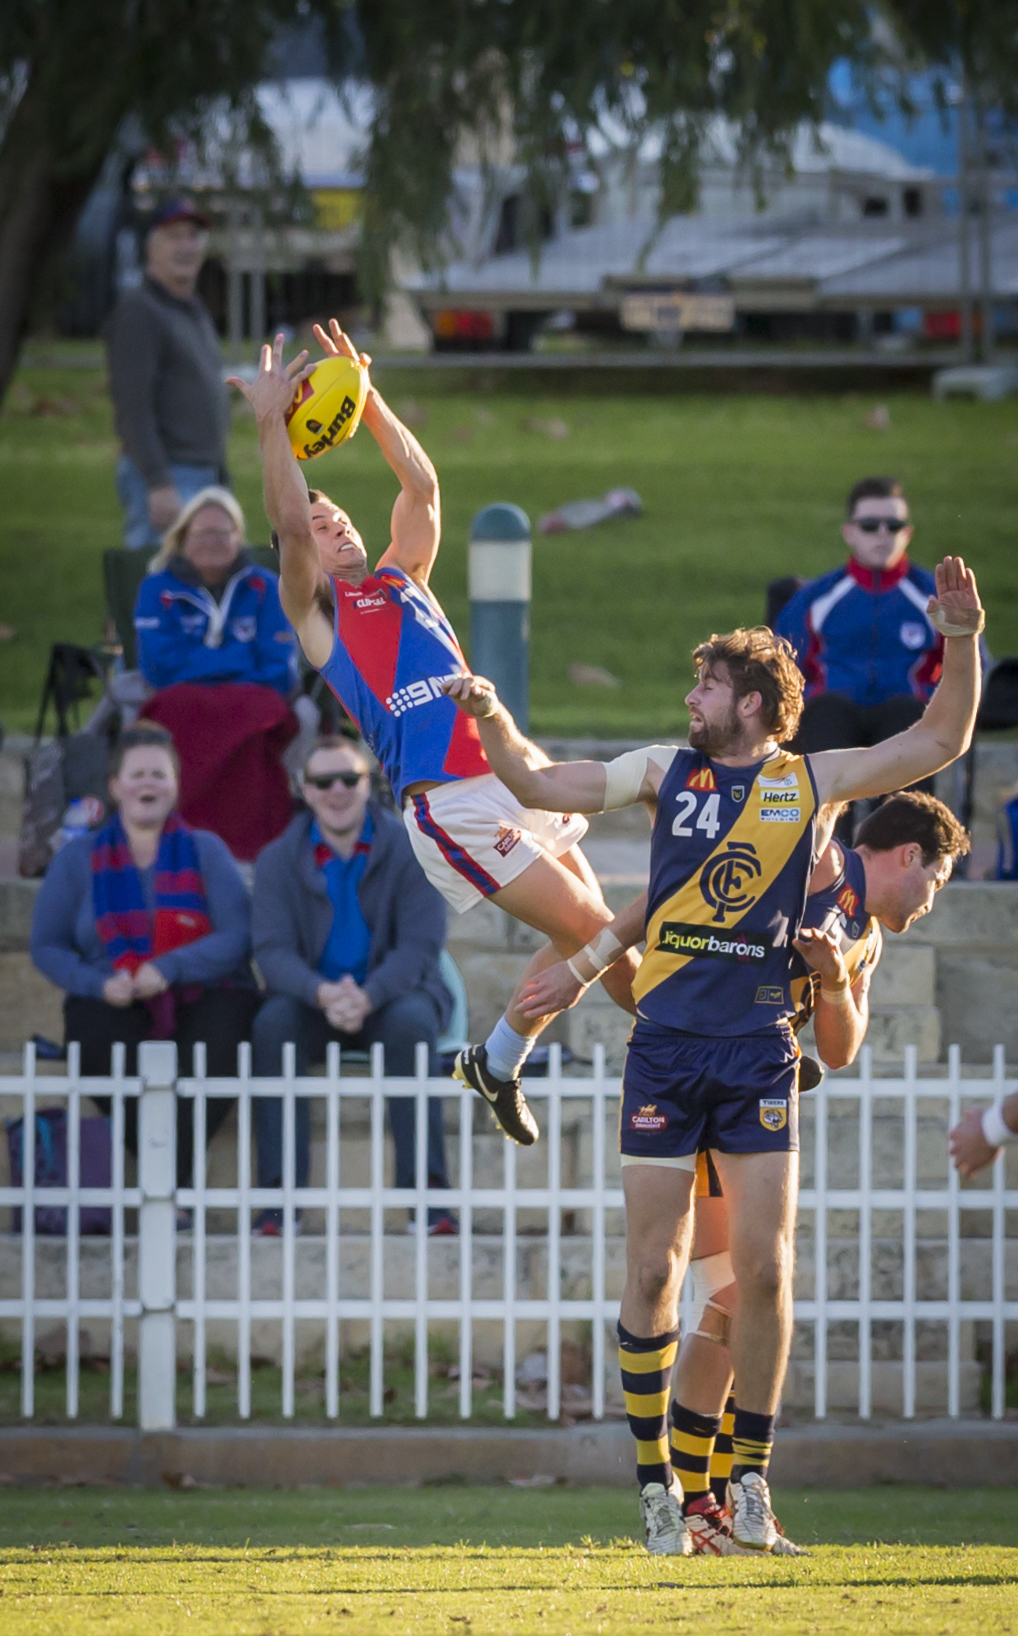 Steve Potente with an impressive mark against Claremont. Picture: Dan White